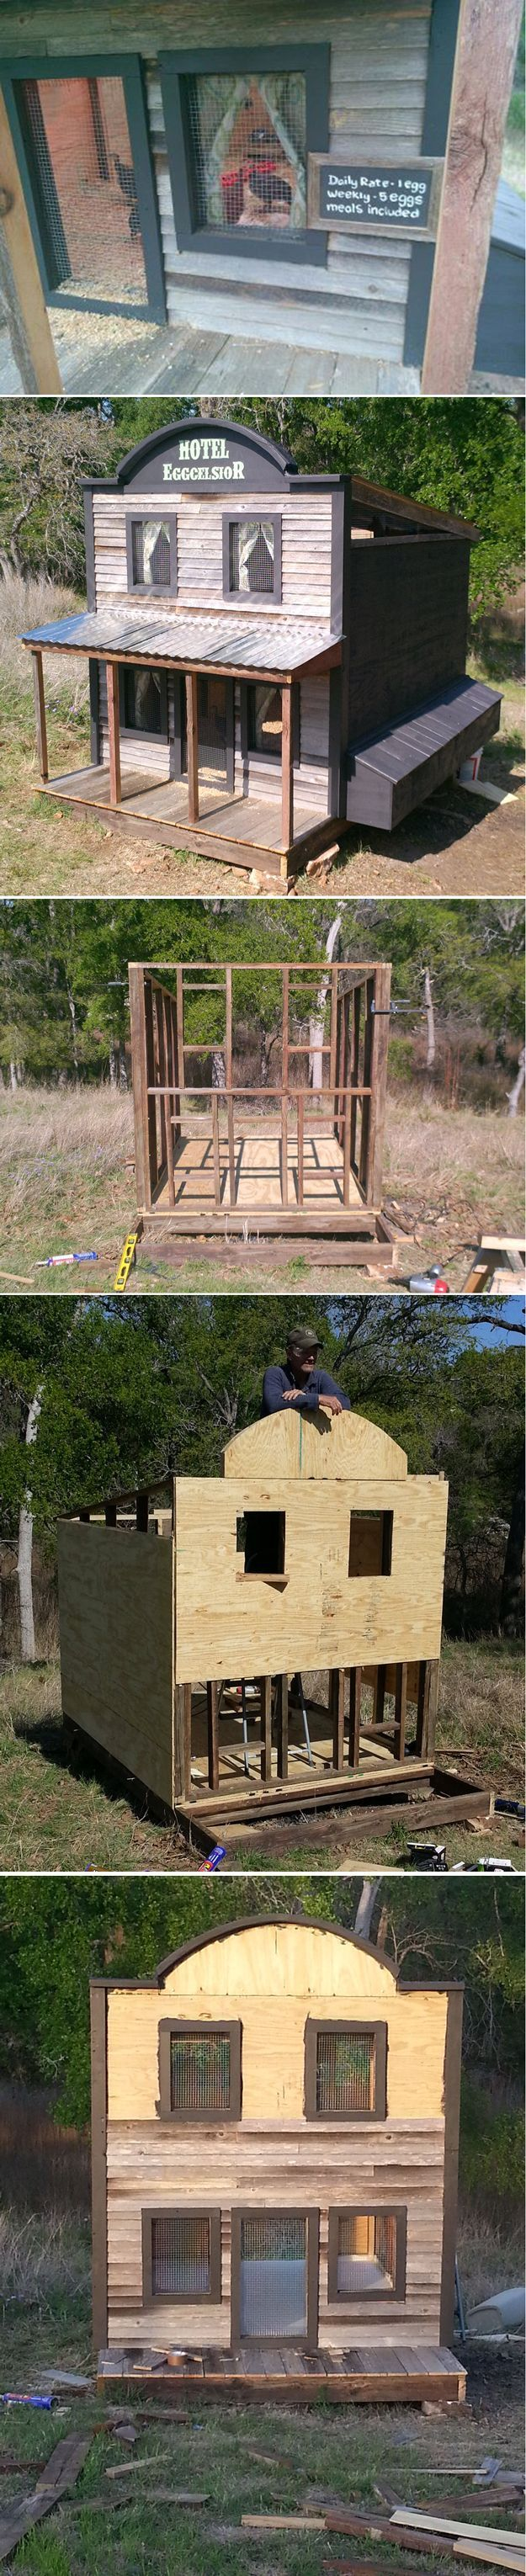 15 More Awesome Chicken Coop Designs And Ideas | How To Build A House For  Your